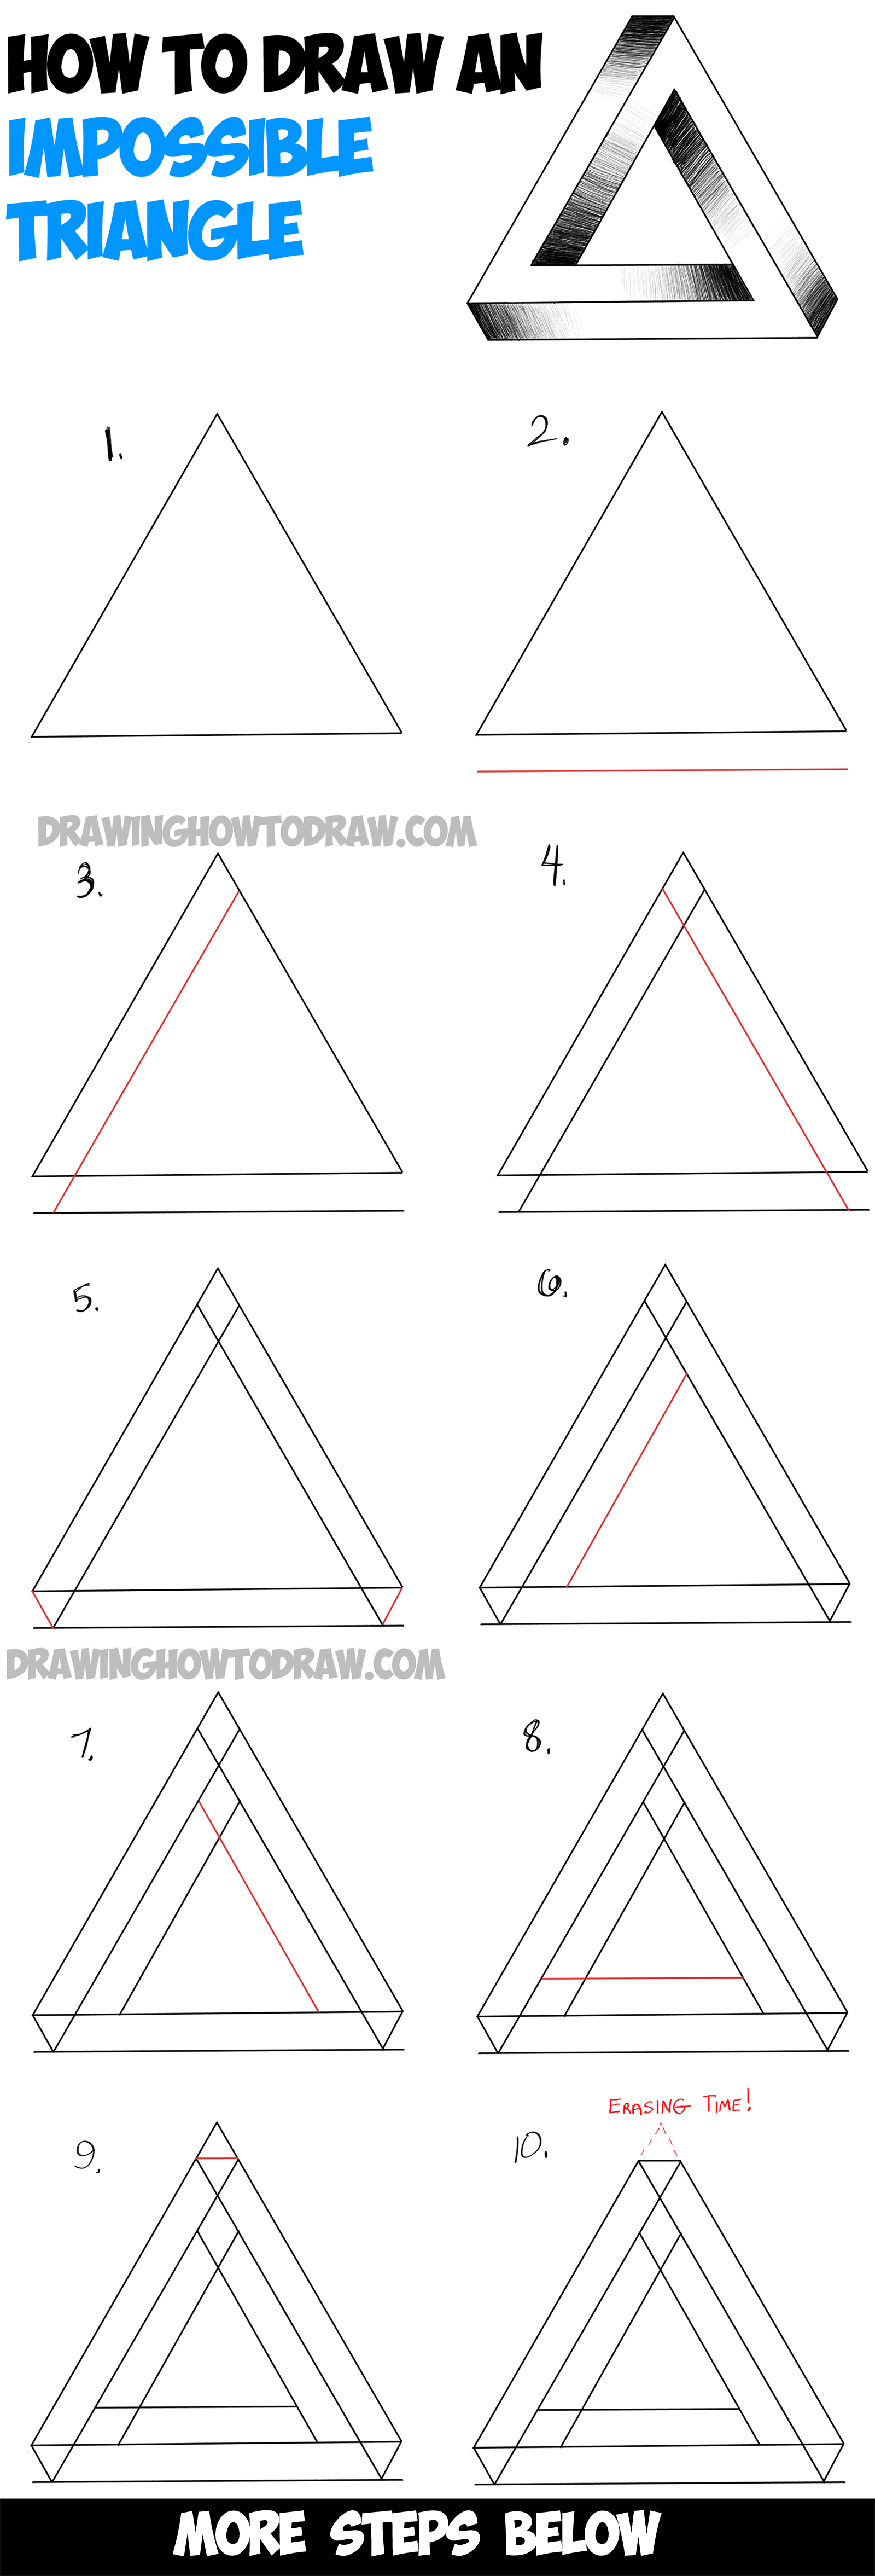 How To Draw An Impossible Triangle Easy Step By Step Drawing